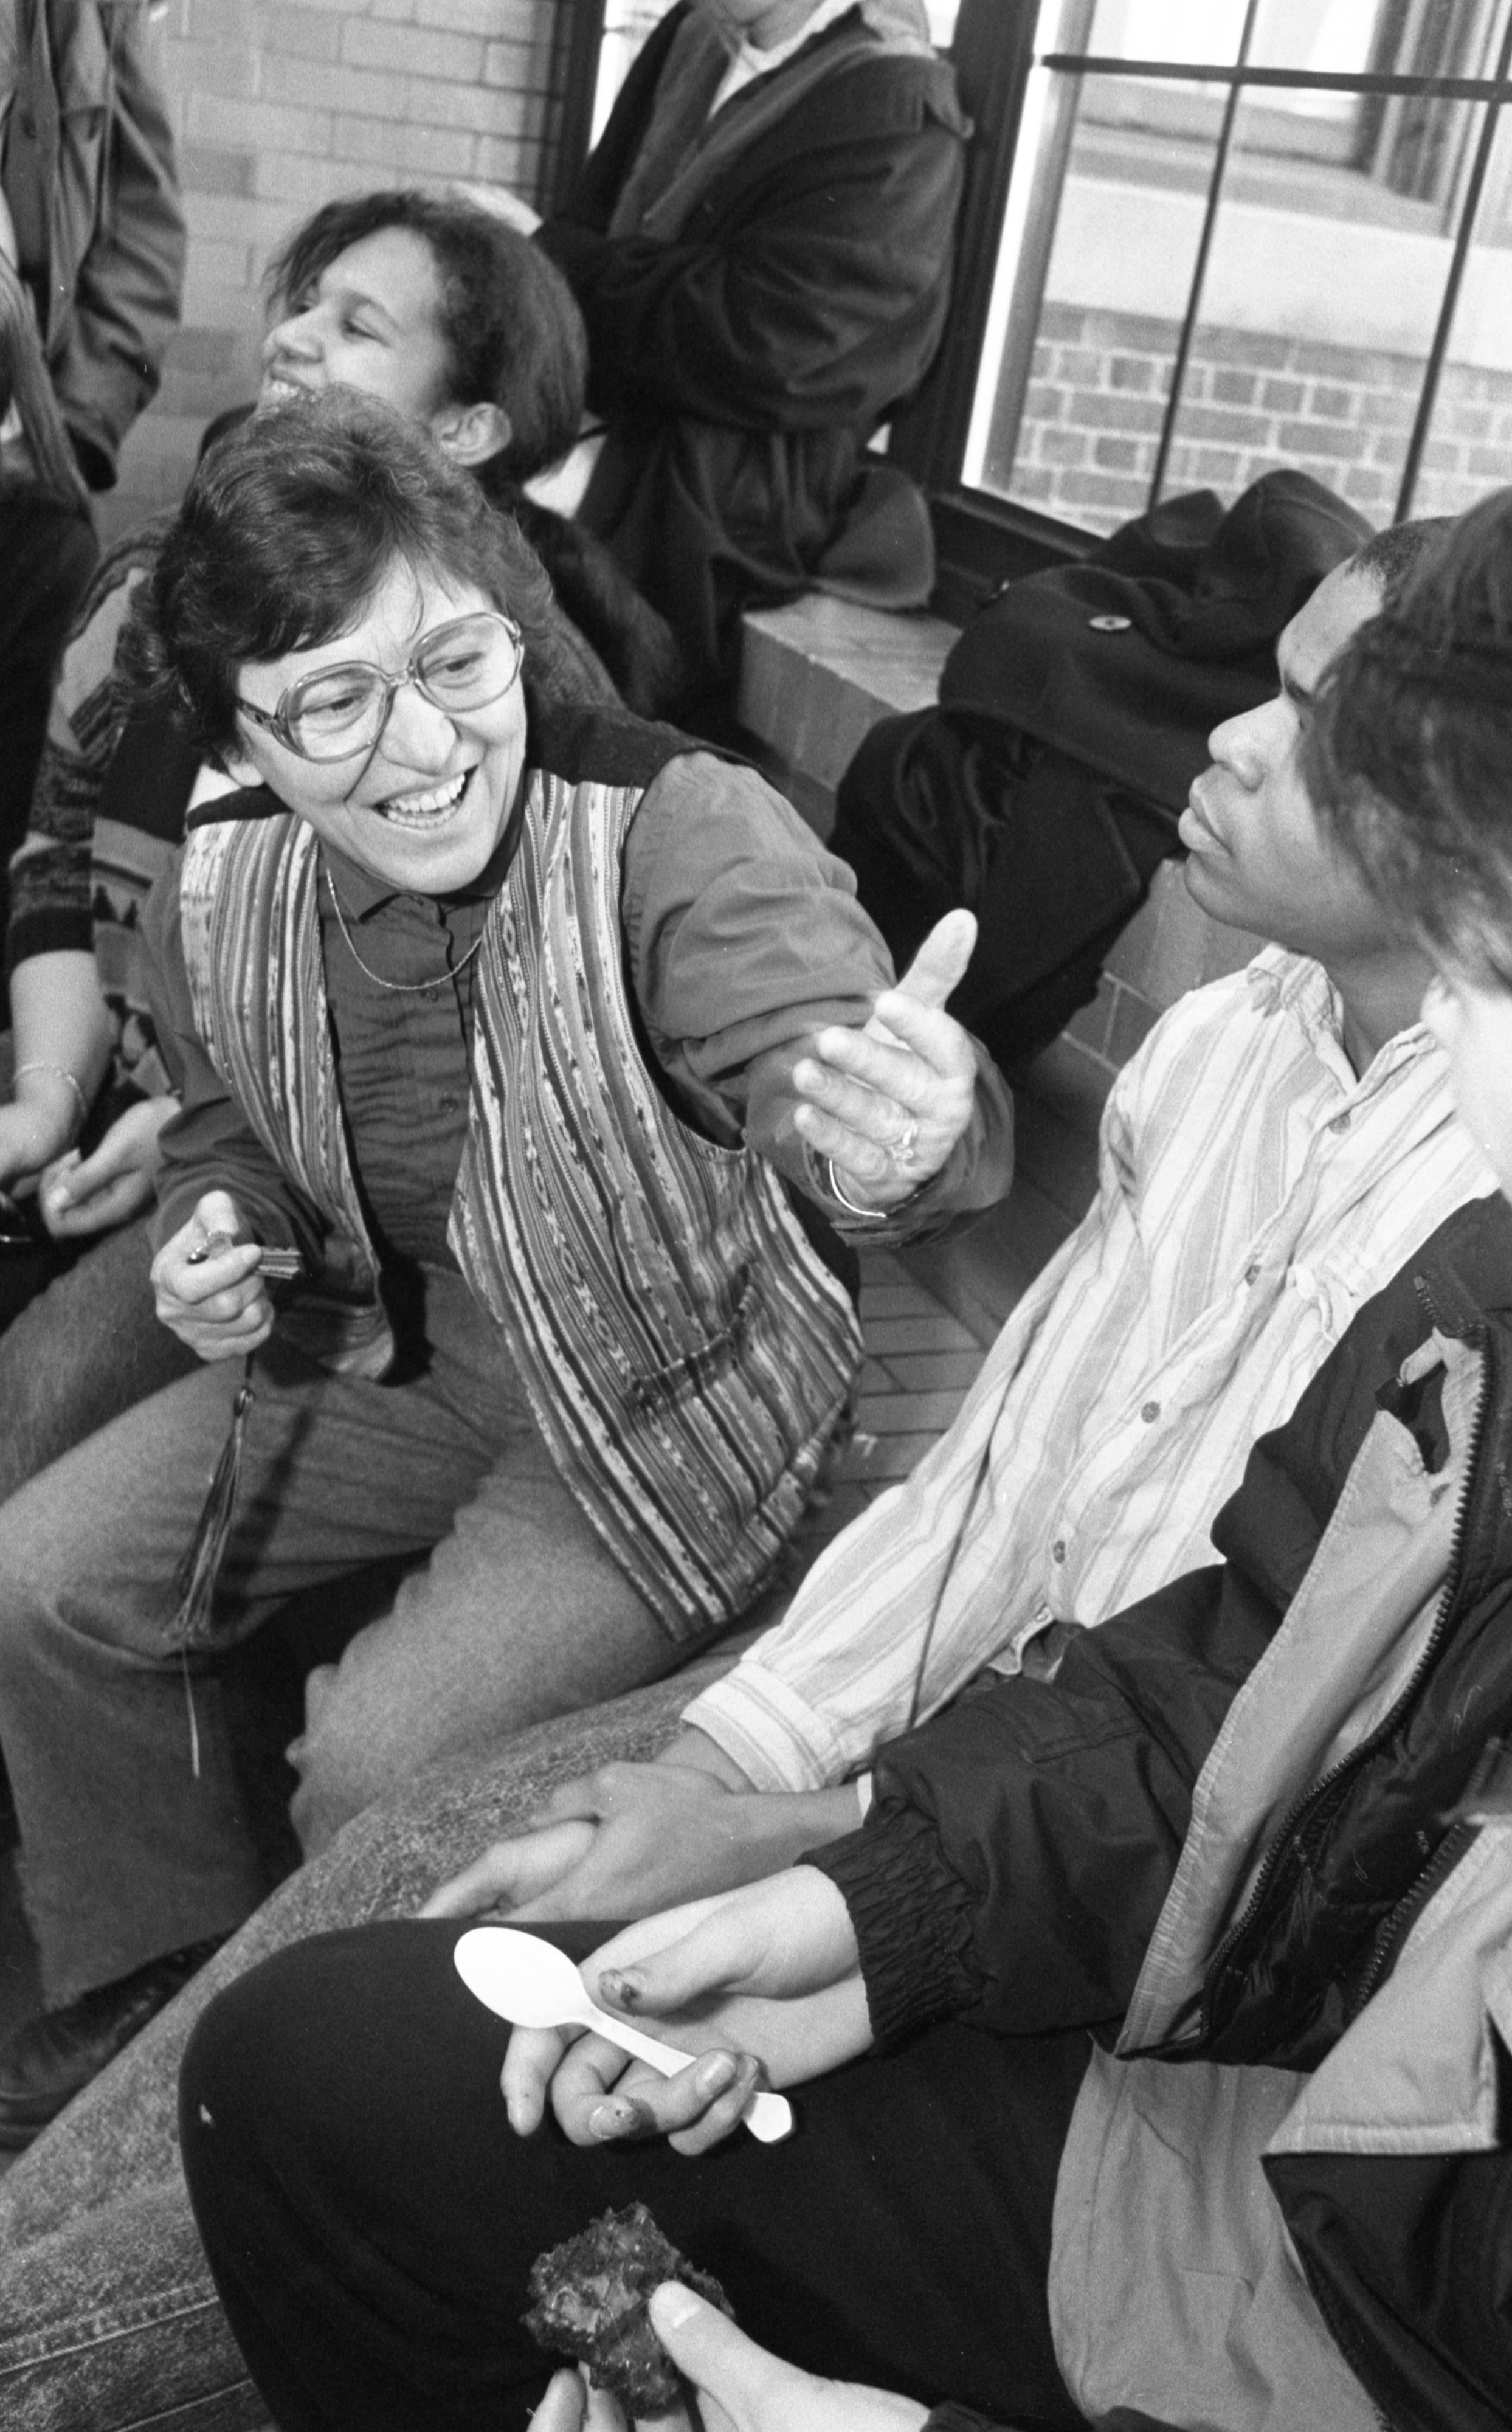 Gena Fine, School-Community Assistant At Community High School, Interacts With Students, March 1990 image